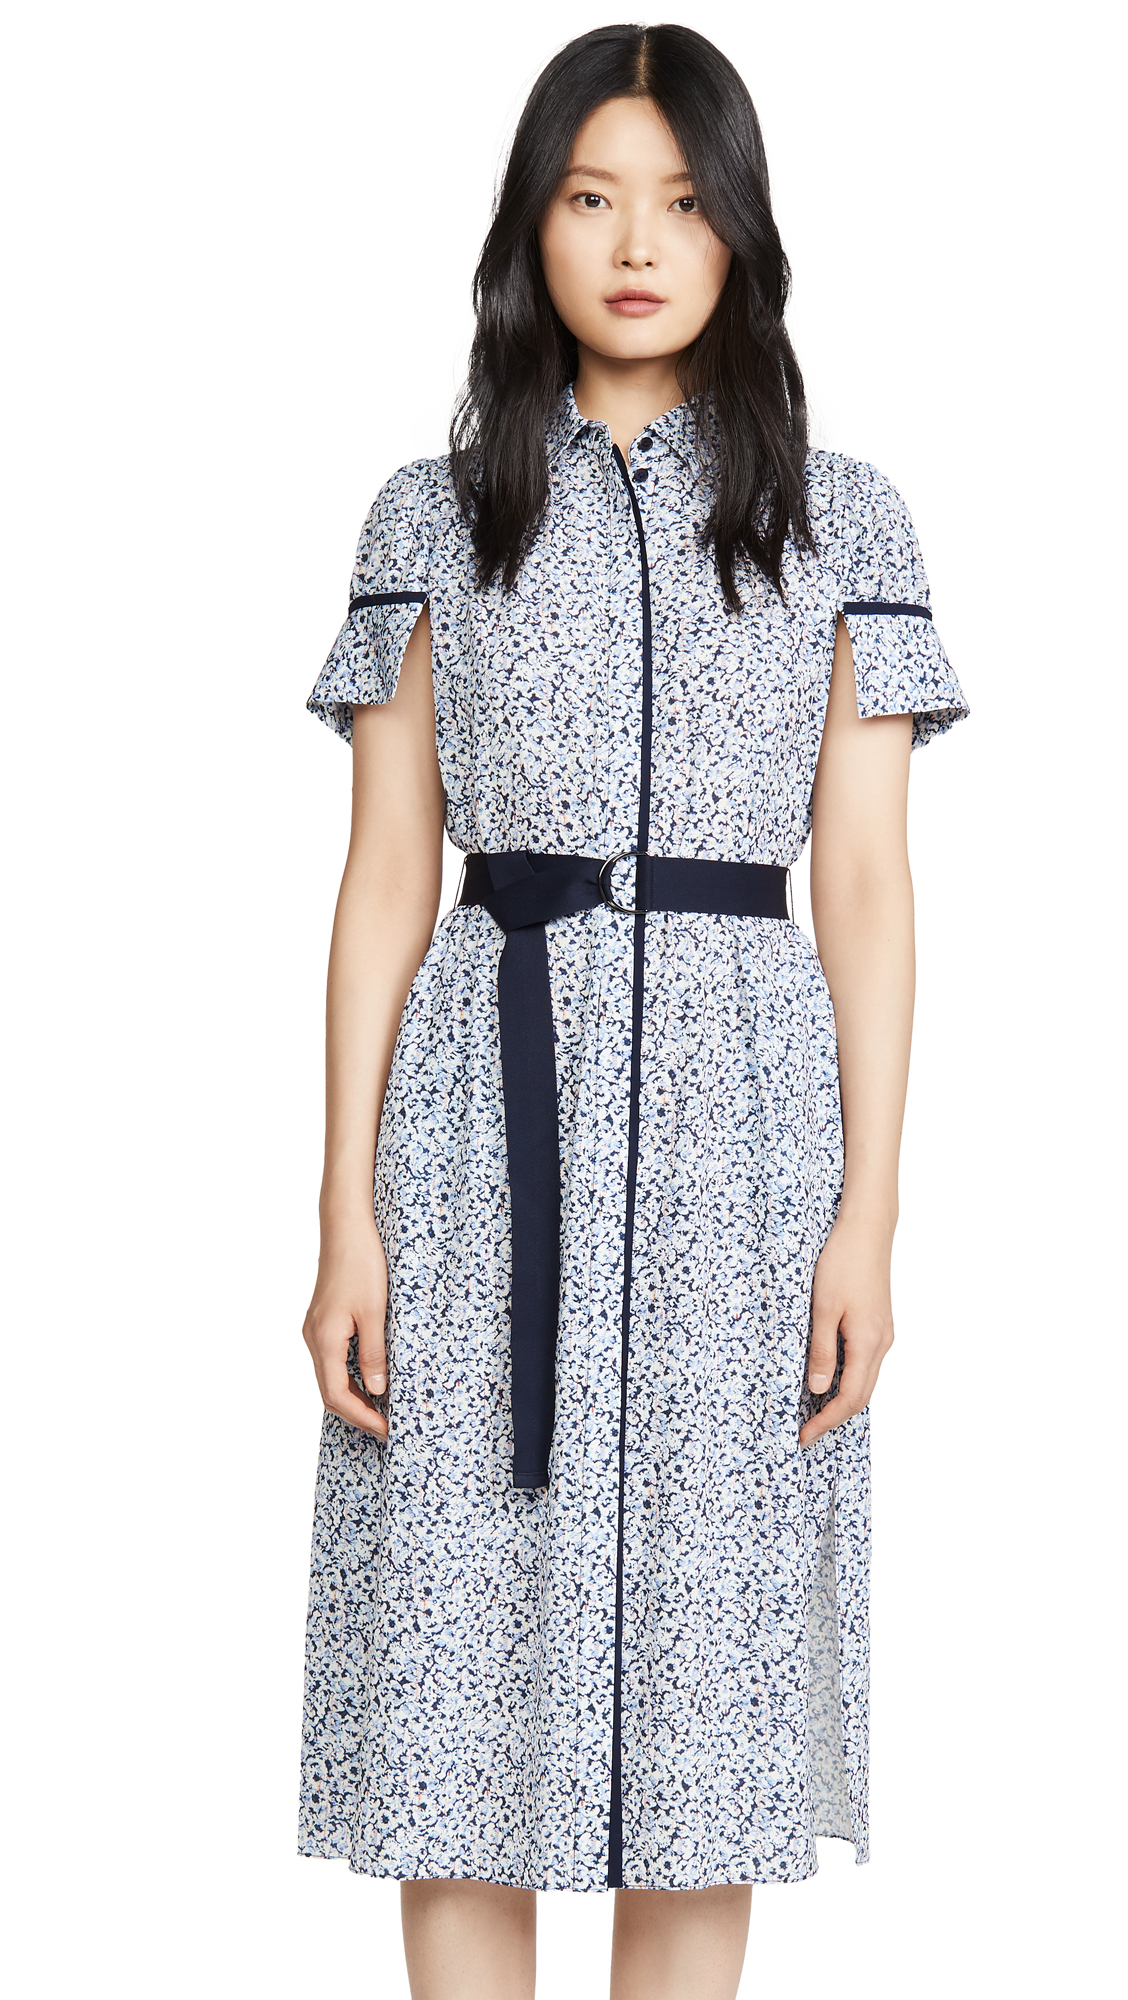 Jason Wu Printed Shirt Dress - 30% Off Sale